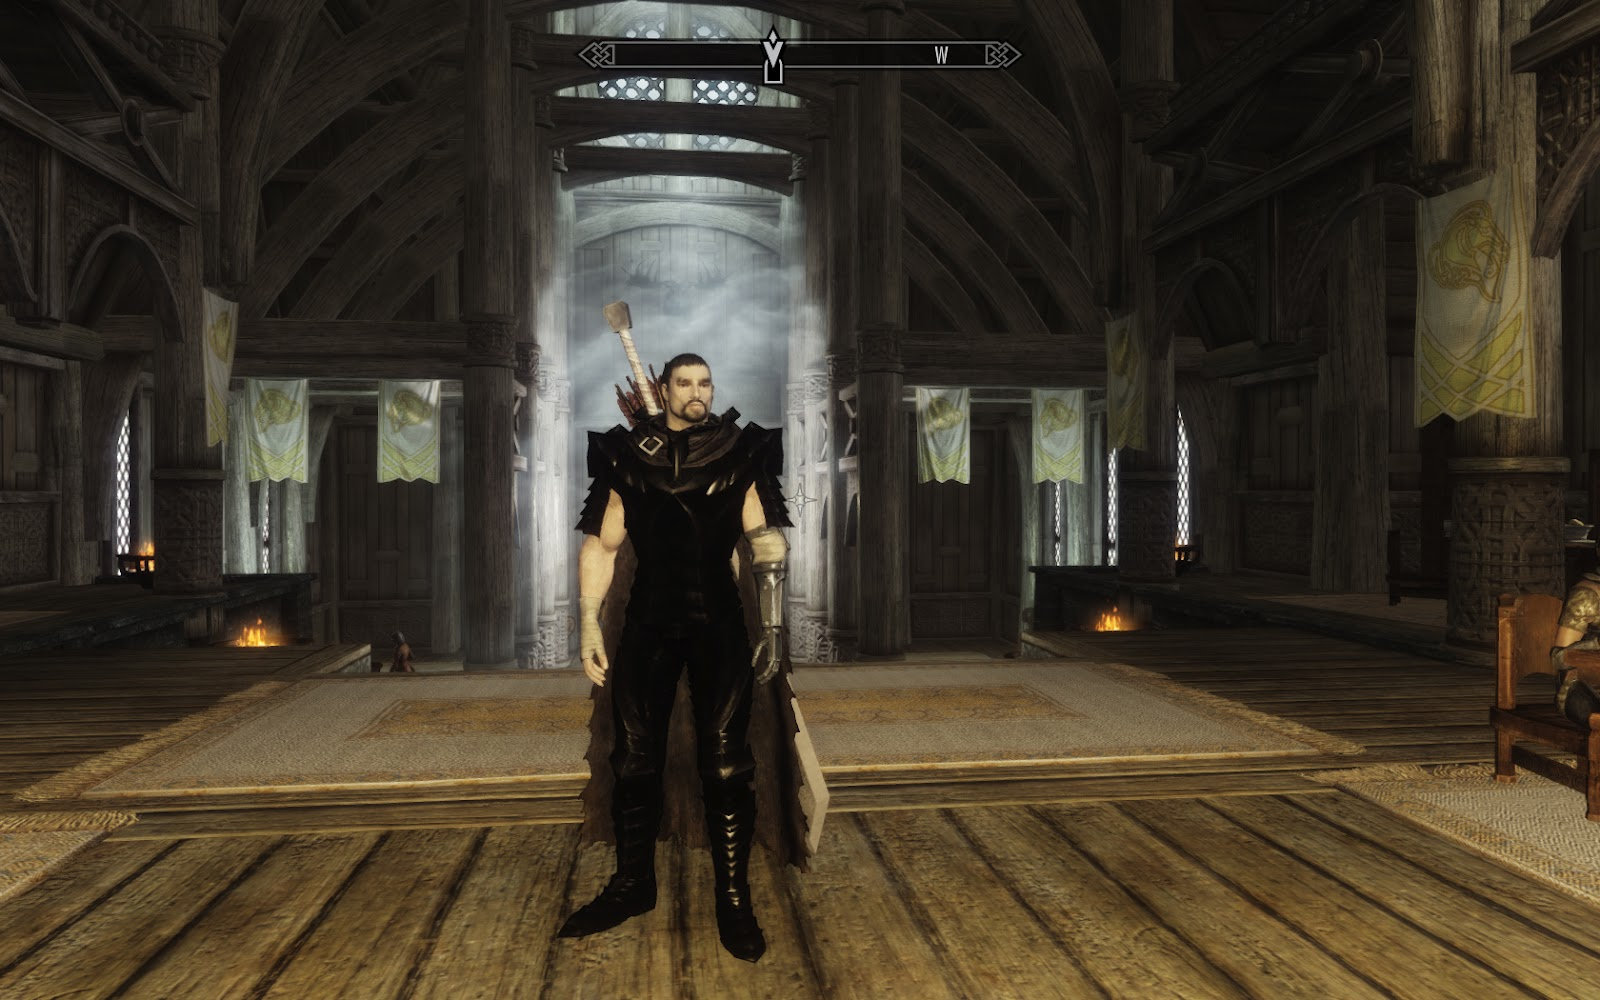 Best Light Armor Skyrim Mod : Ash Cycles